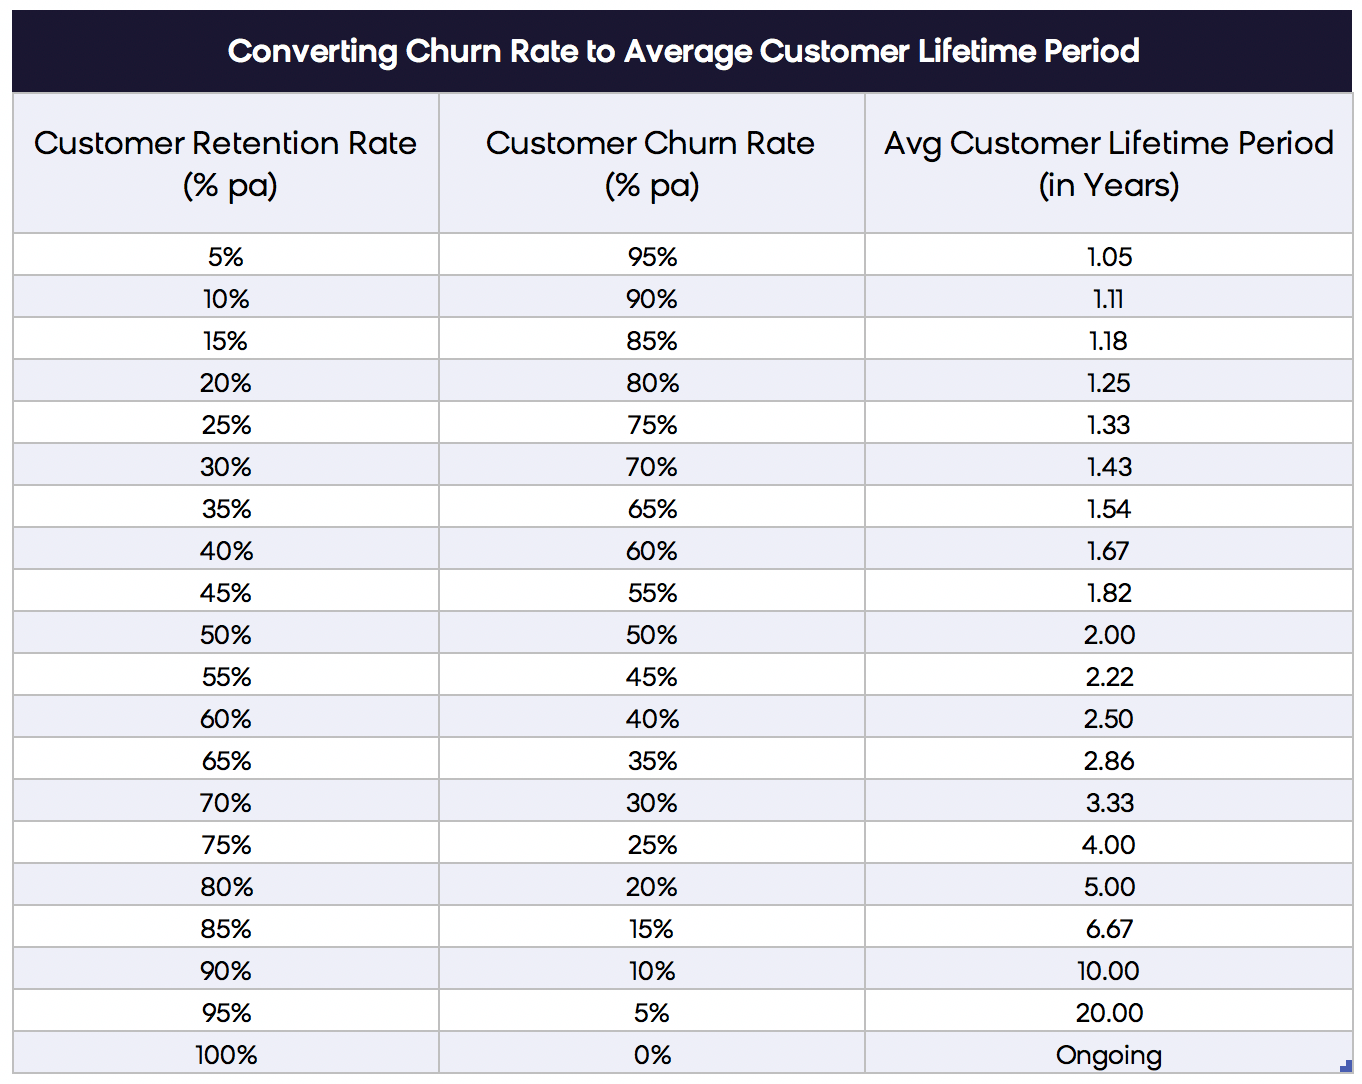 Converting Churn Rate to Average Customer Lifetime Period